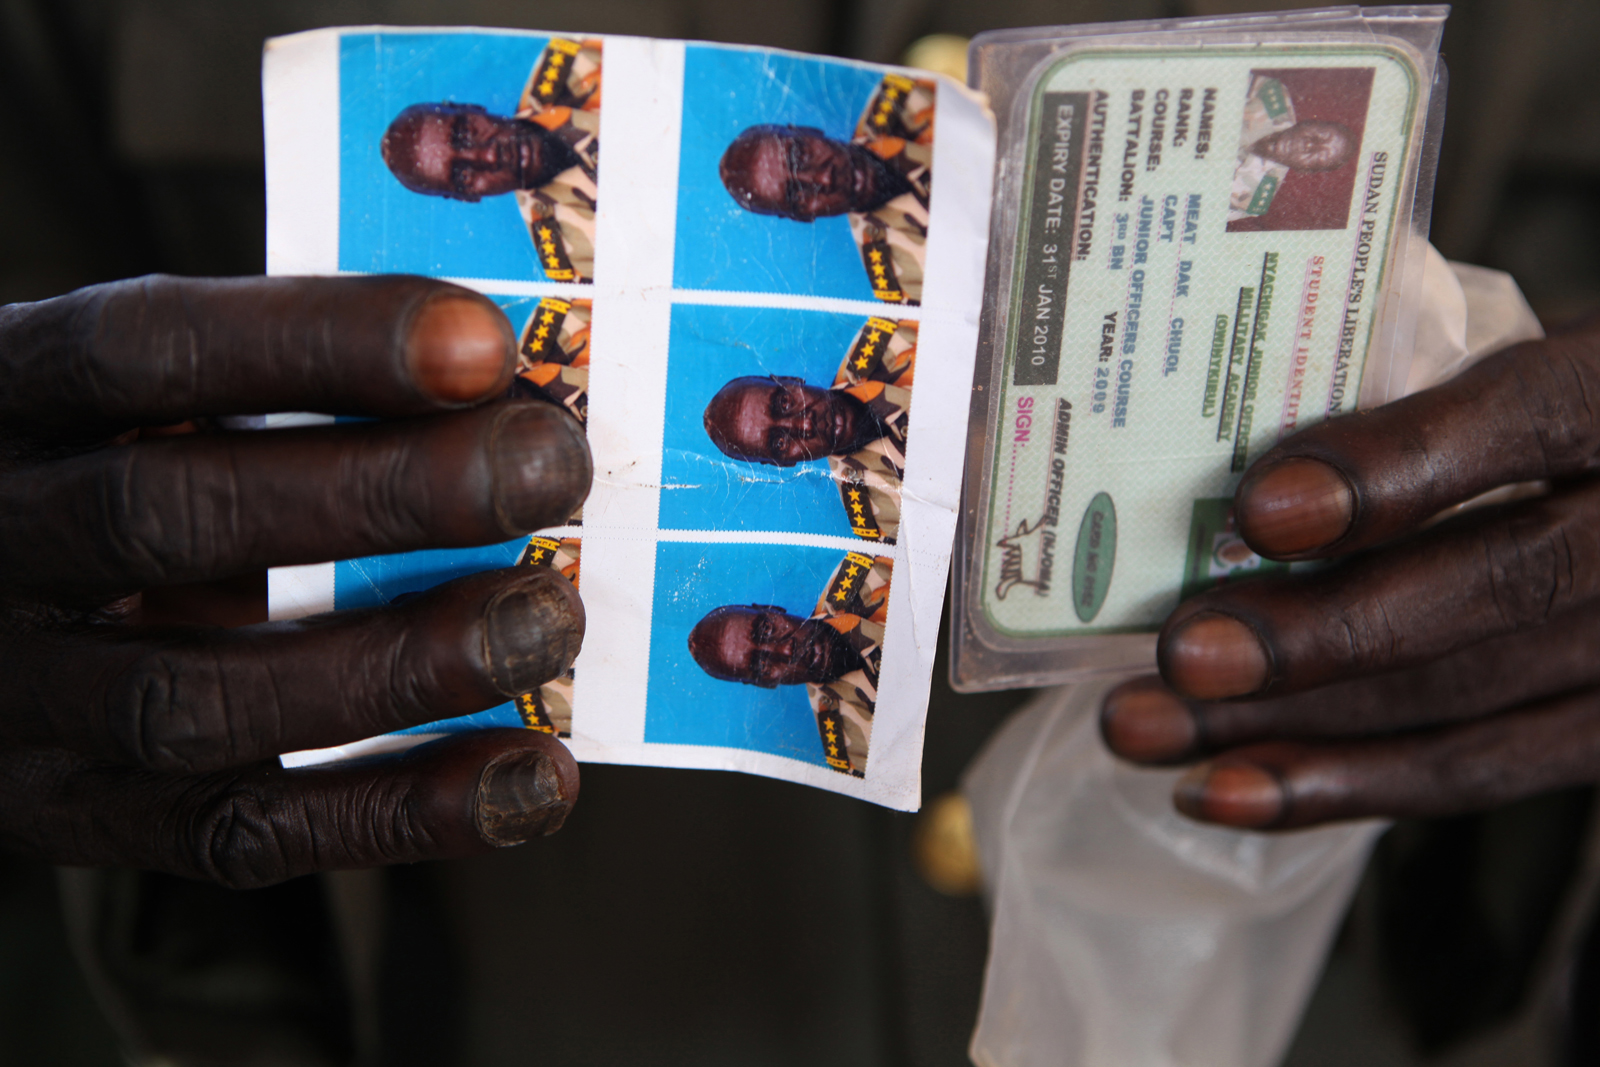 7.	The countdown to the referendum has begun. After decades of civil war, the majority of South Sudanese people are expected to vote for independence, which would mark the 54th African nation. Here, the Sudan People's Liberation Army (SPLA) register to vote at the BILPAM army headquarters in Juba.